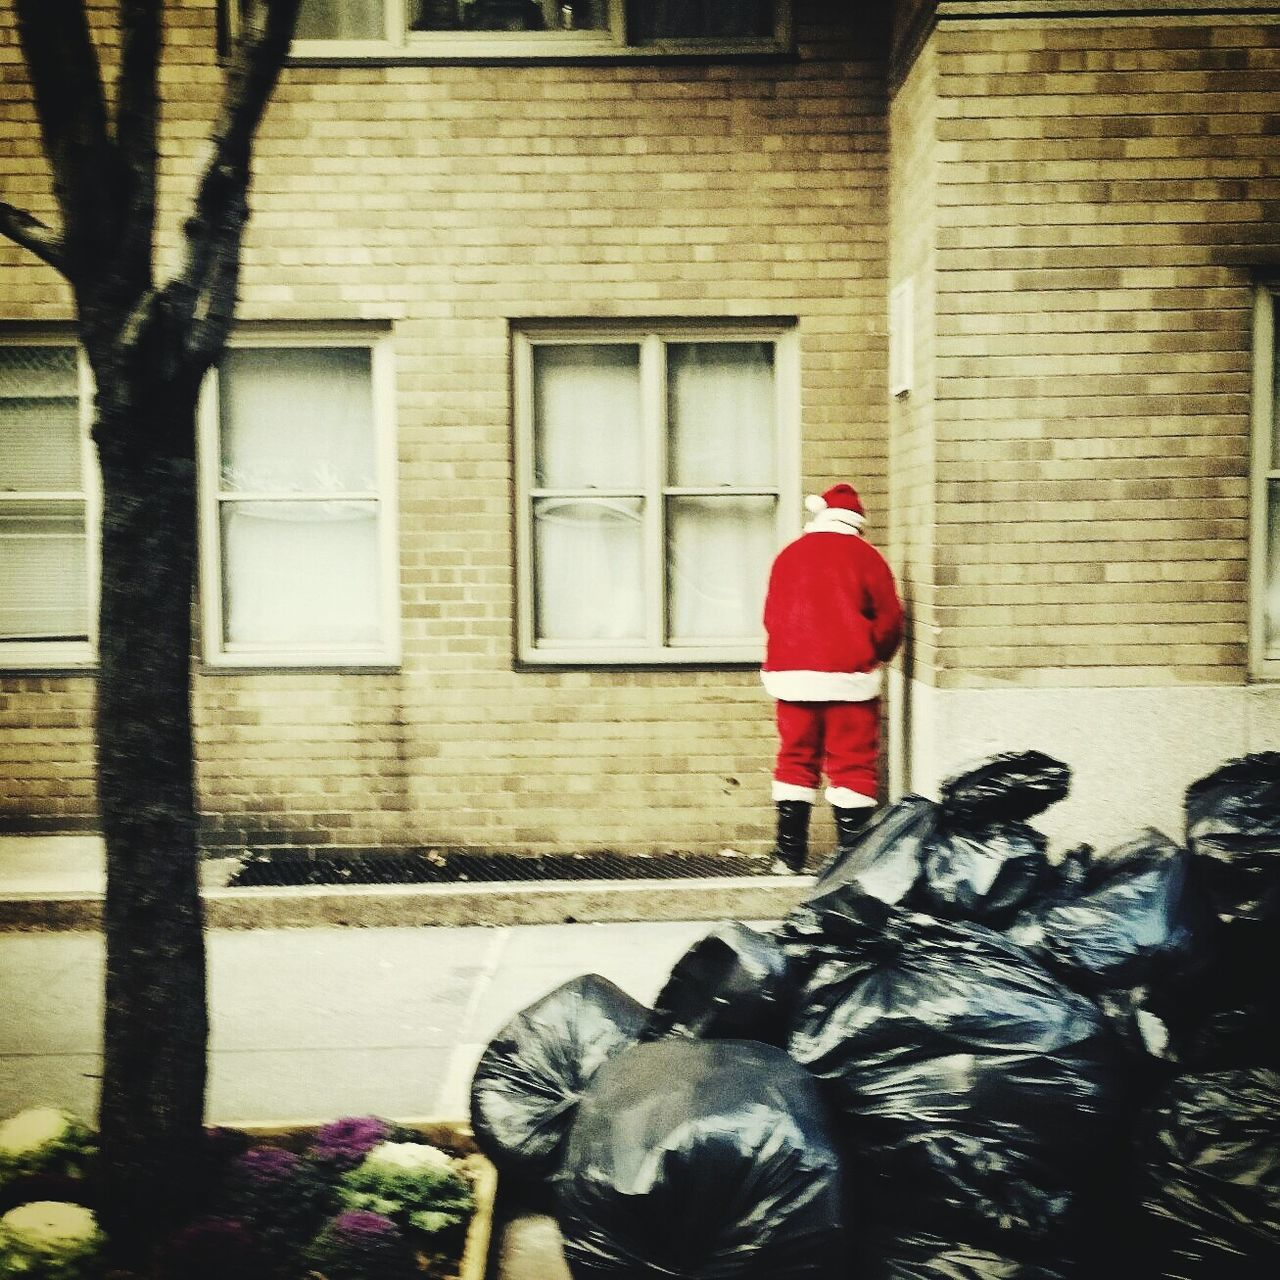 My First Pic On EyeEm Santa Santacon Holidays New York CityPerson Funny Moments NAUGHTY Or NICE  Christmas The Culture Of The Holidays Enjoy The New Normal Day Tourism New York 12daysofeyeem 12 Days Of Eyeem: These Are My Friends Christmas Time Santa Claus Holiday Memories